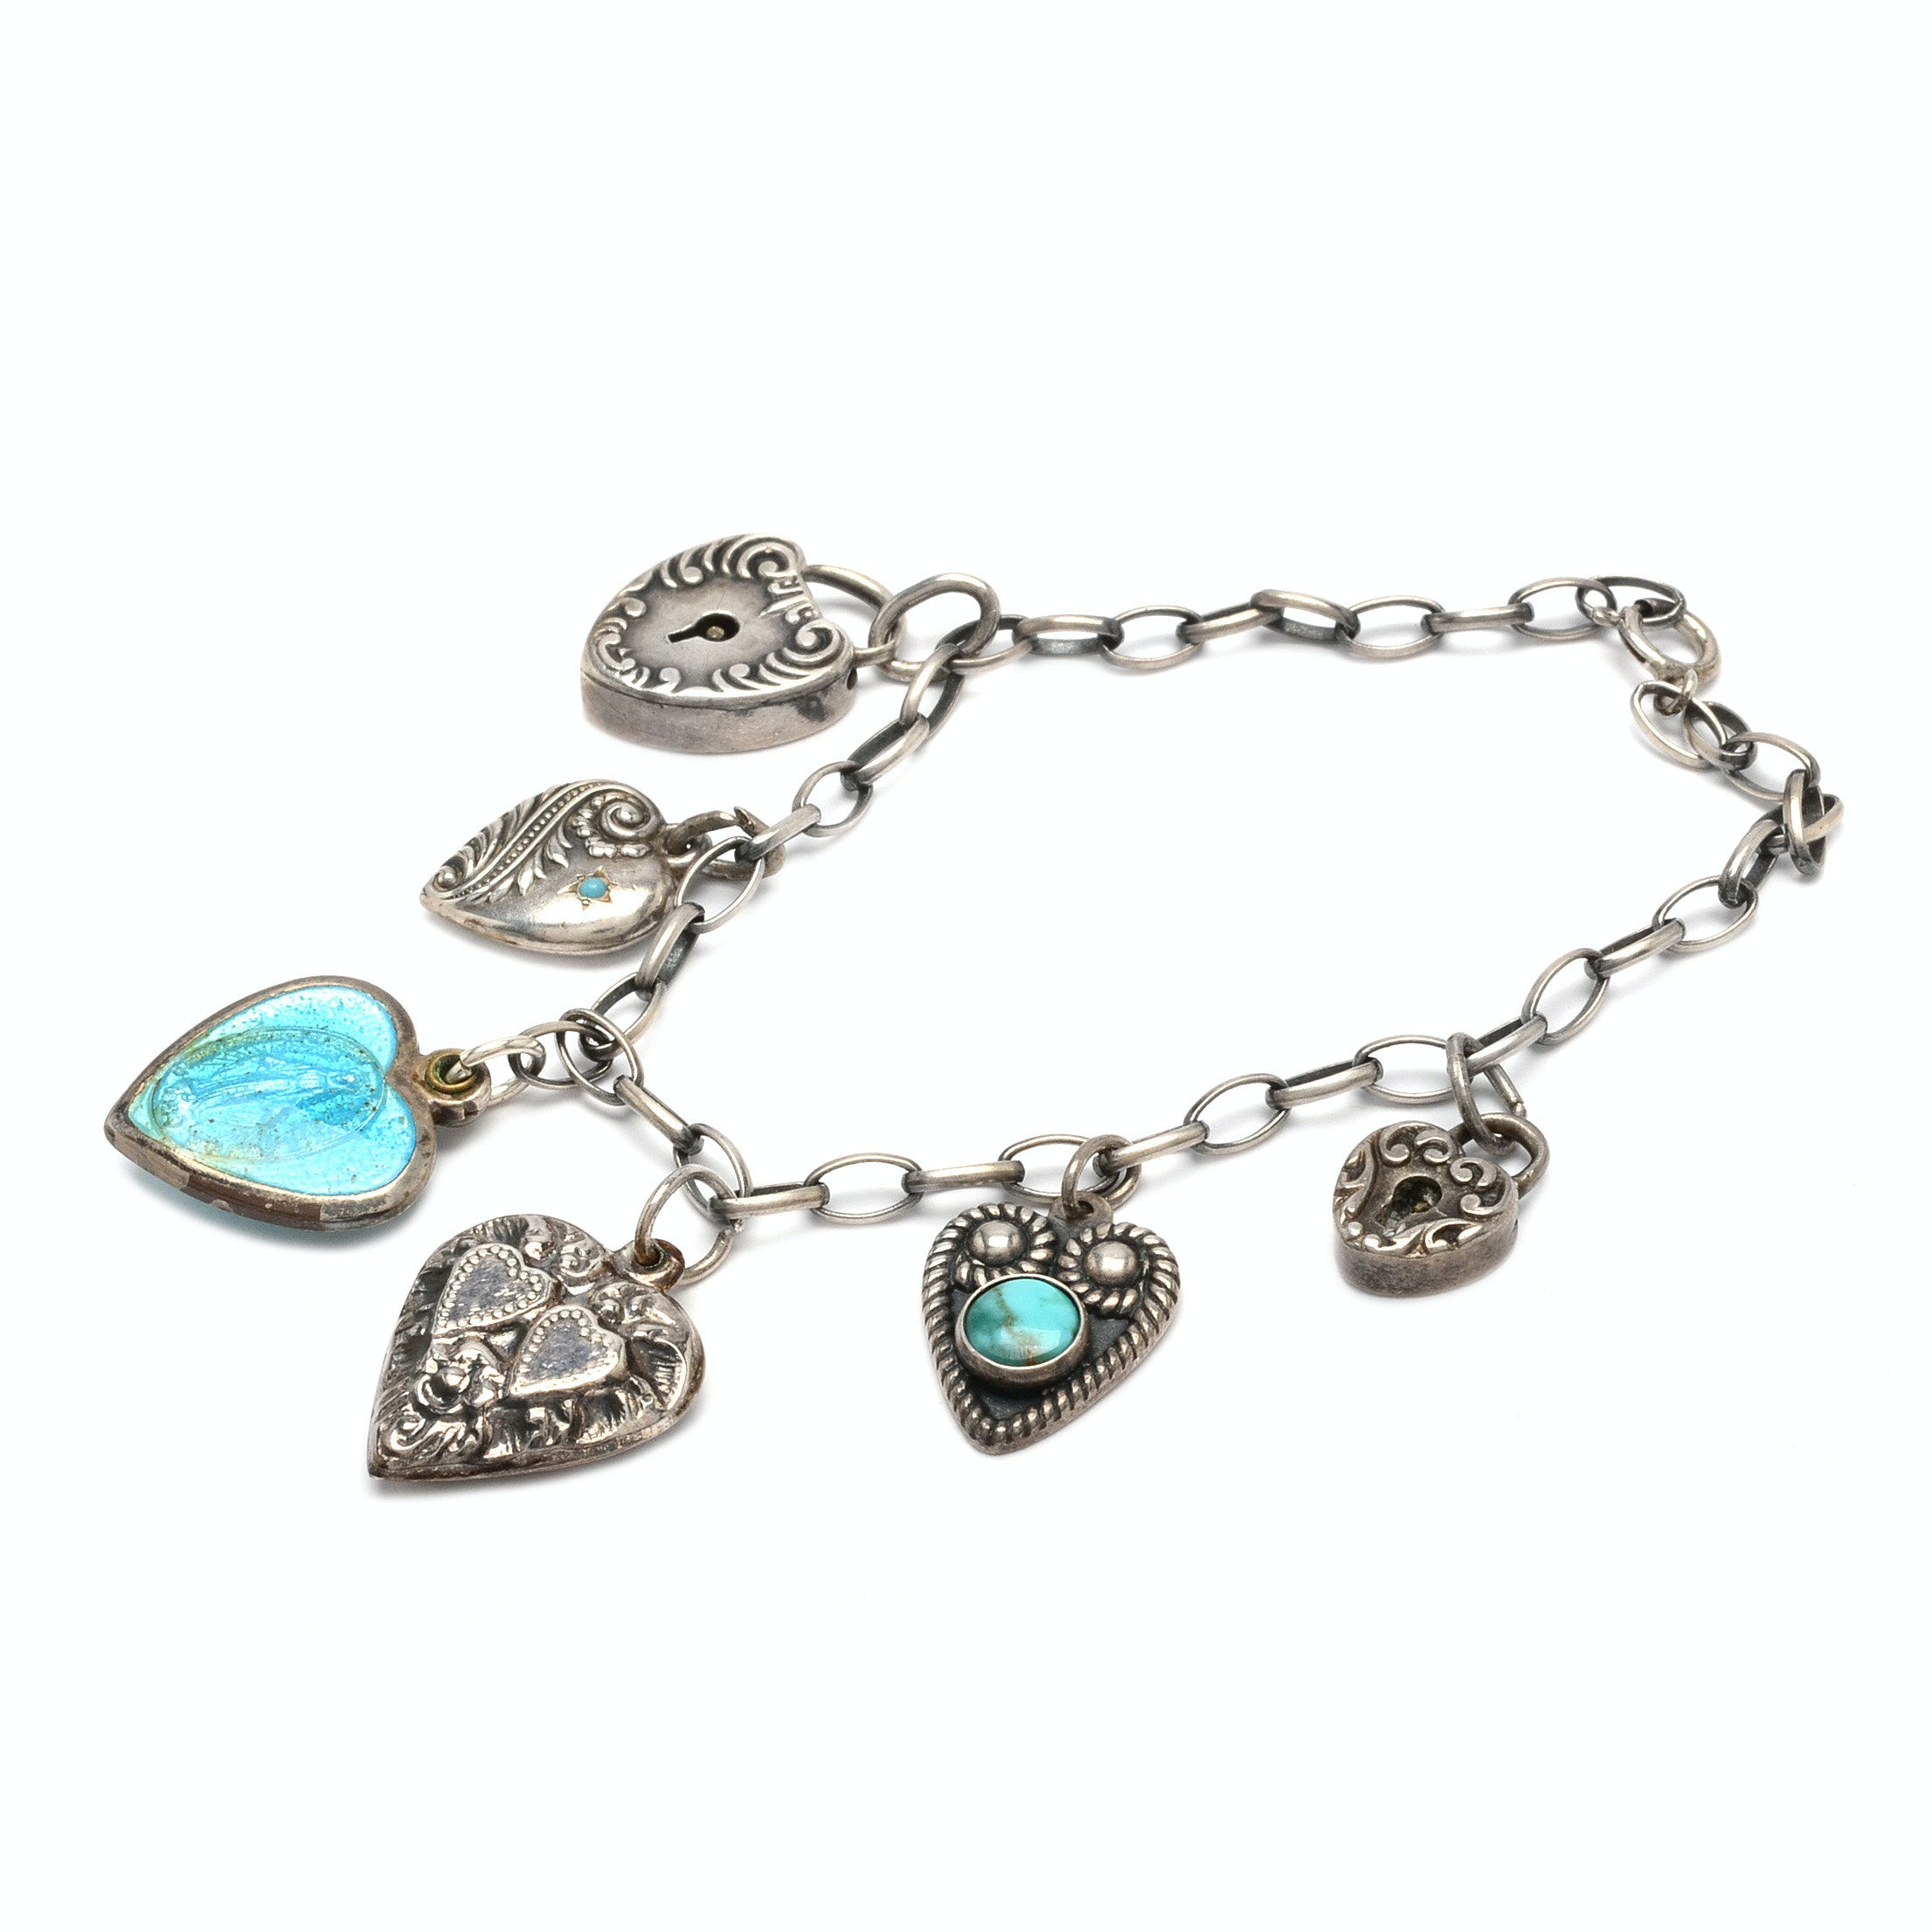 "Vintage Sterling Silver ""Sweetheart"" Charm Bracelet with Heart Charms"